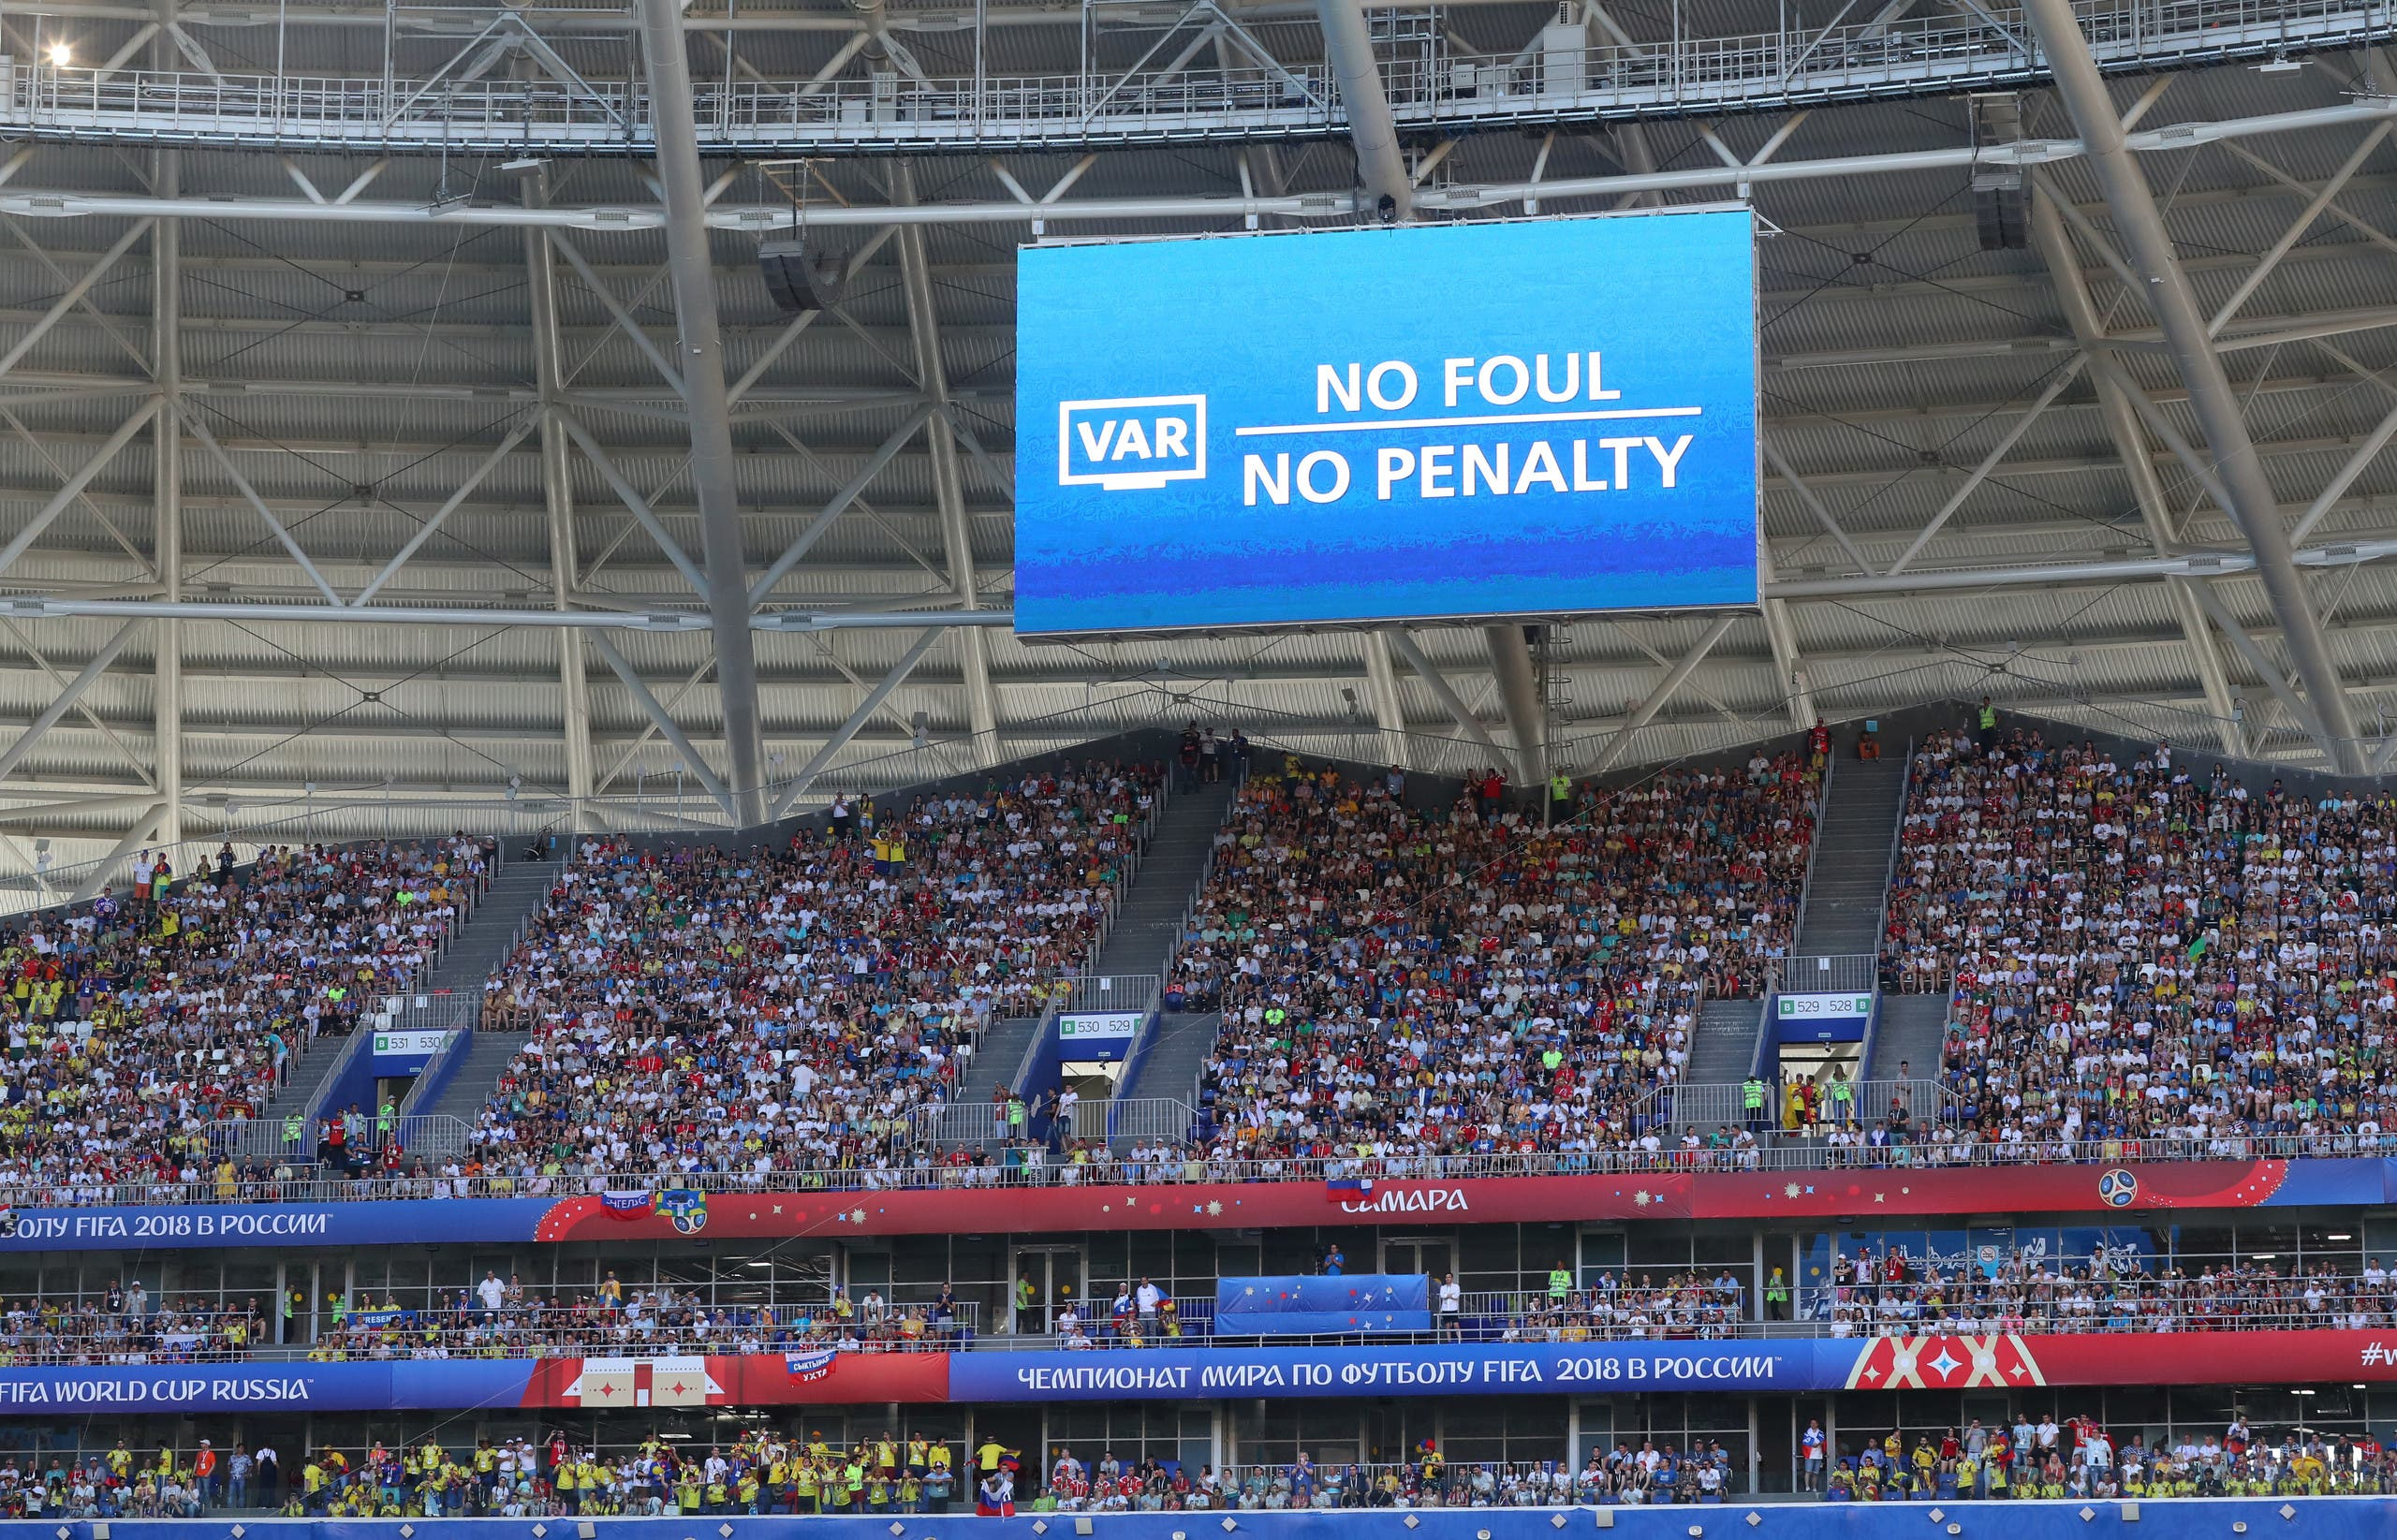 VAR World Cup Russia (Reuters)